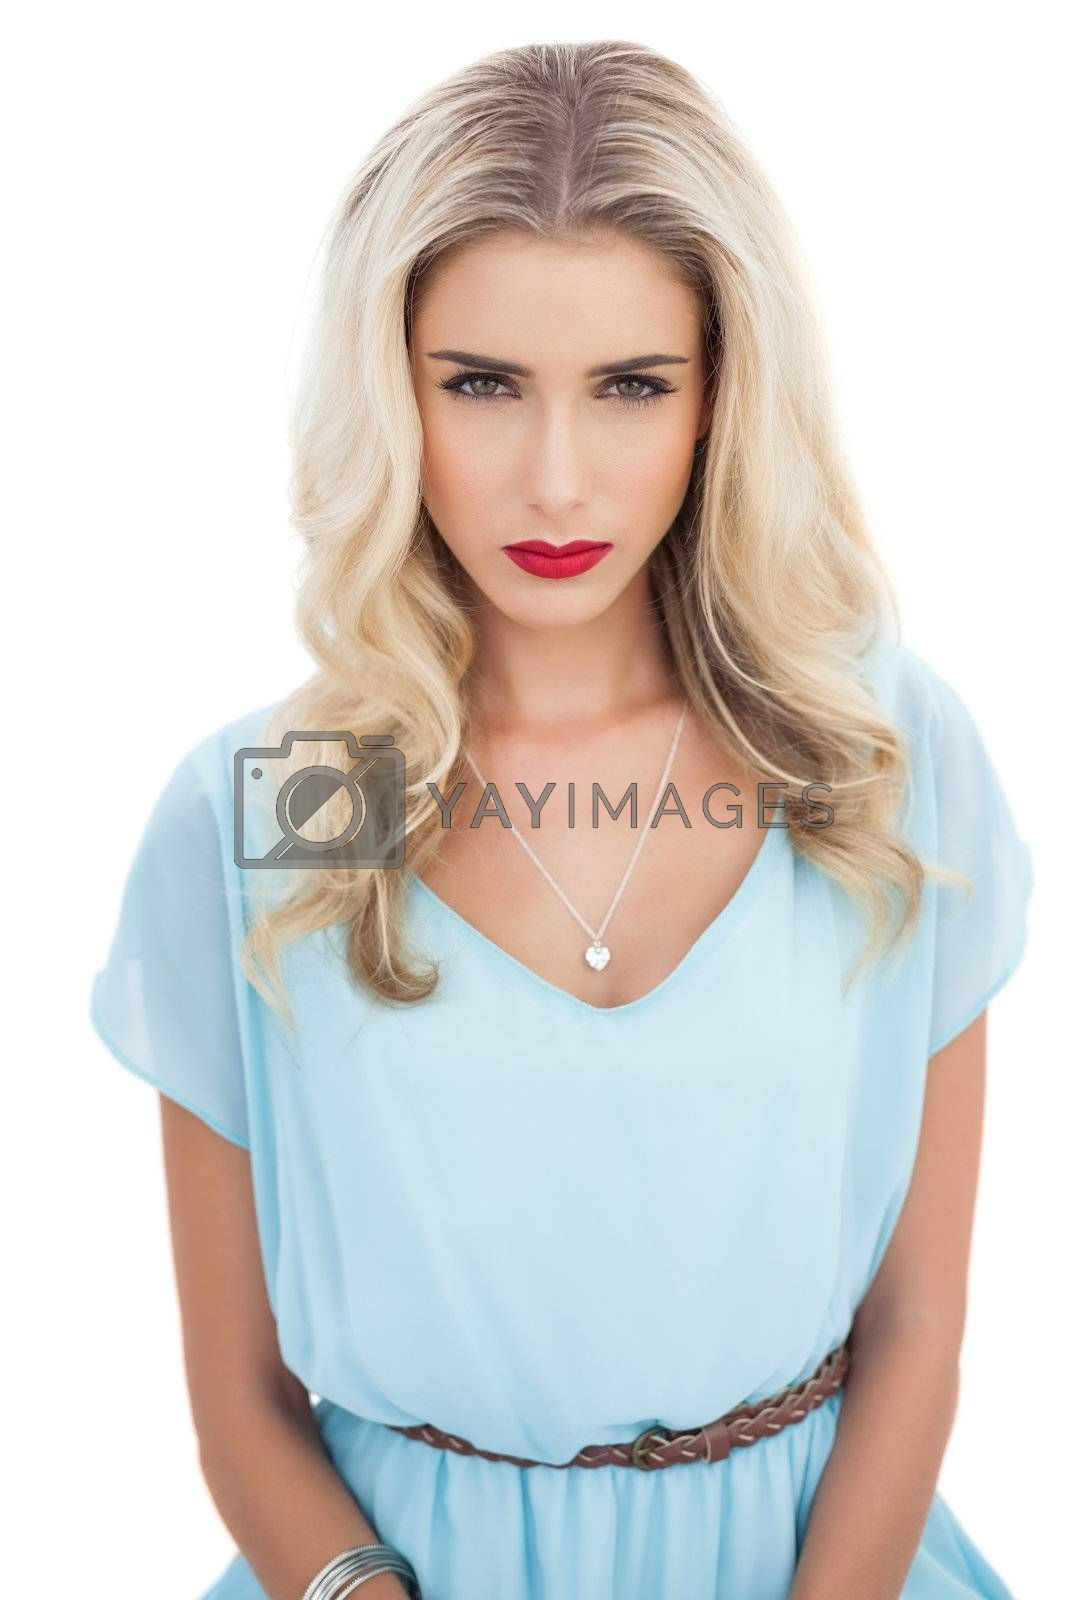 Puzzled blonde model in blue dress looking at camera by Wavebreakmedia